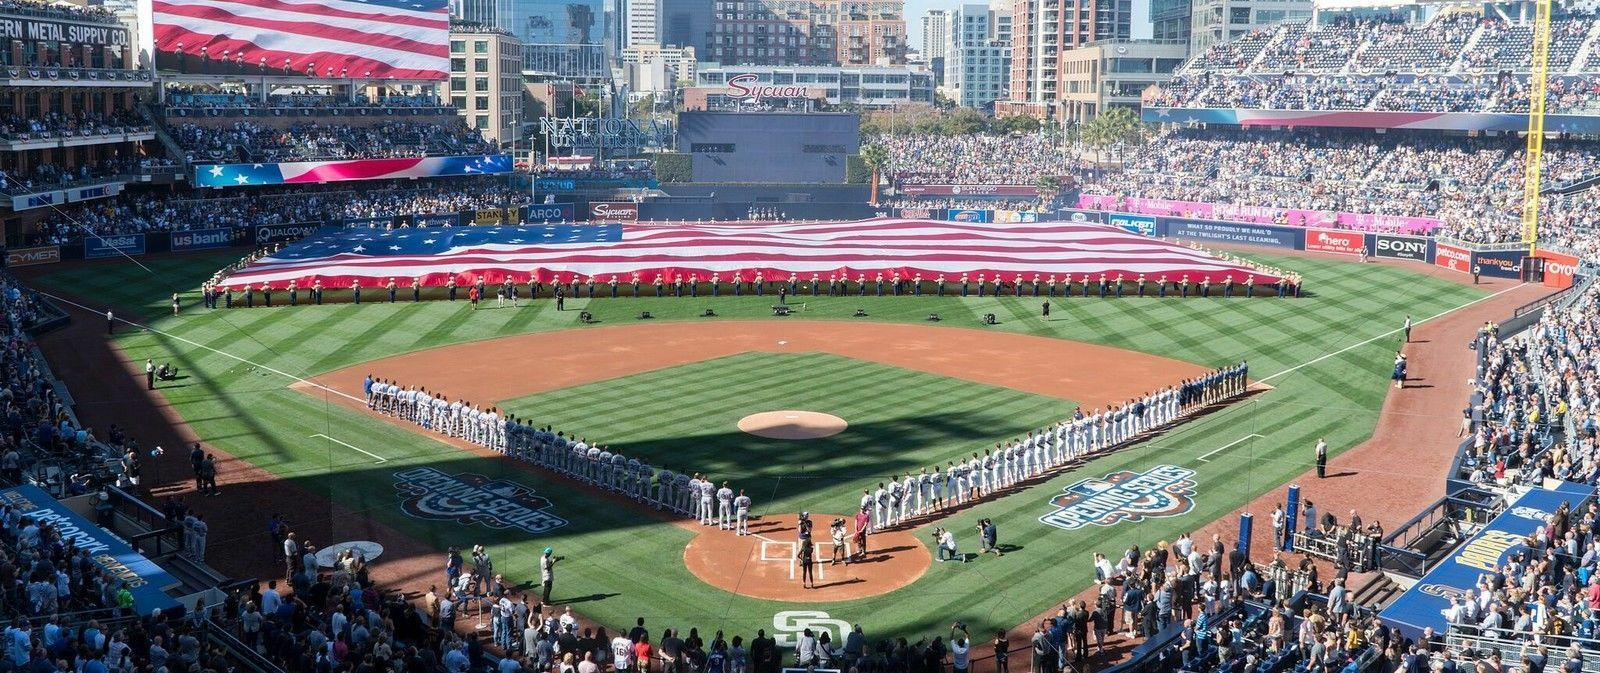 Pittsburgh Pirates at San Diego Padres Tickets (Baseball Hat Giveaway)